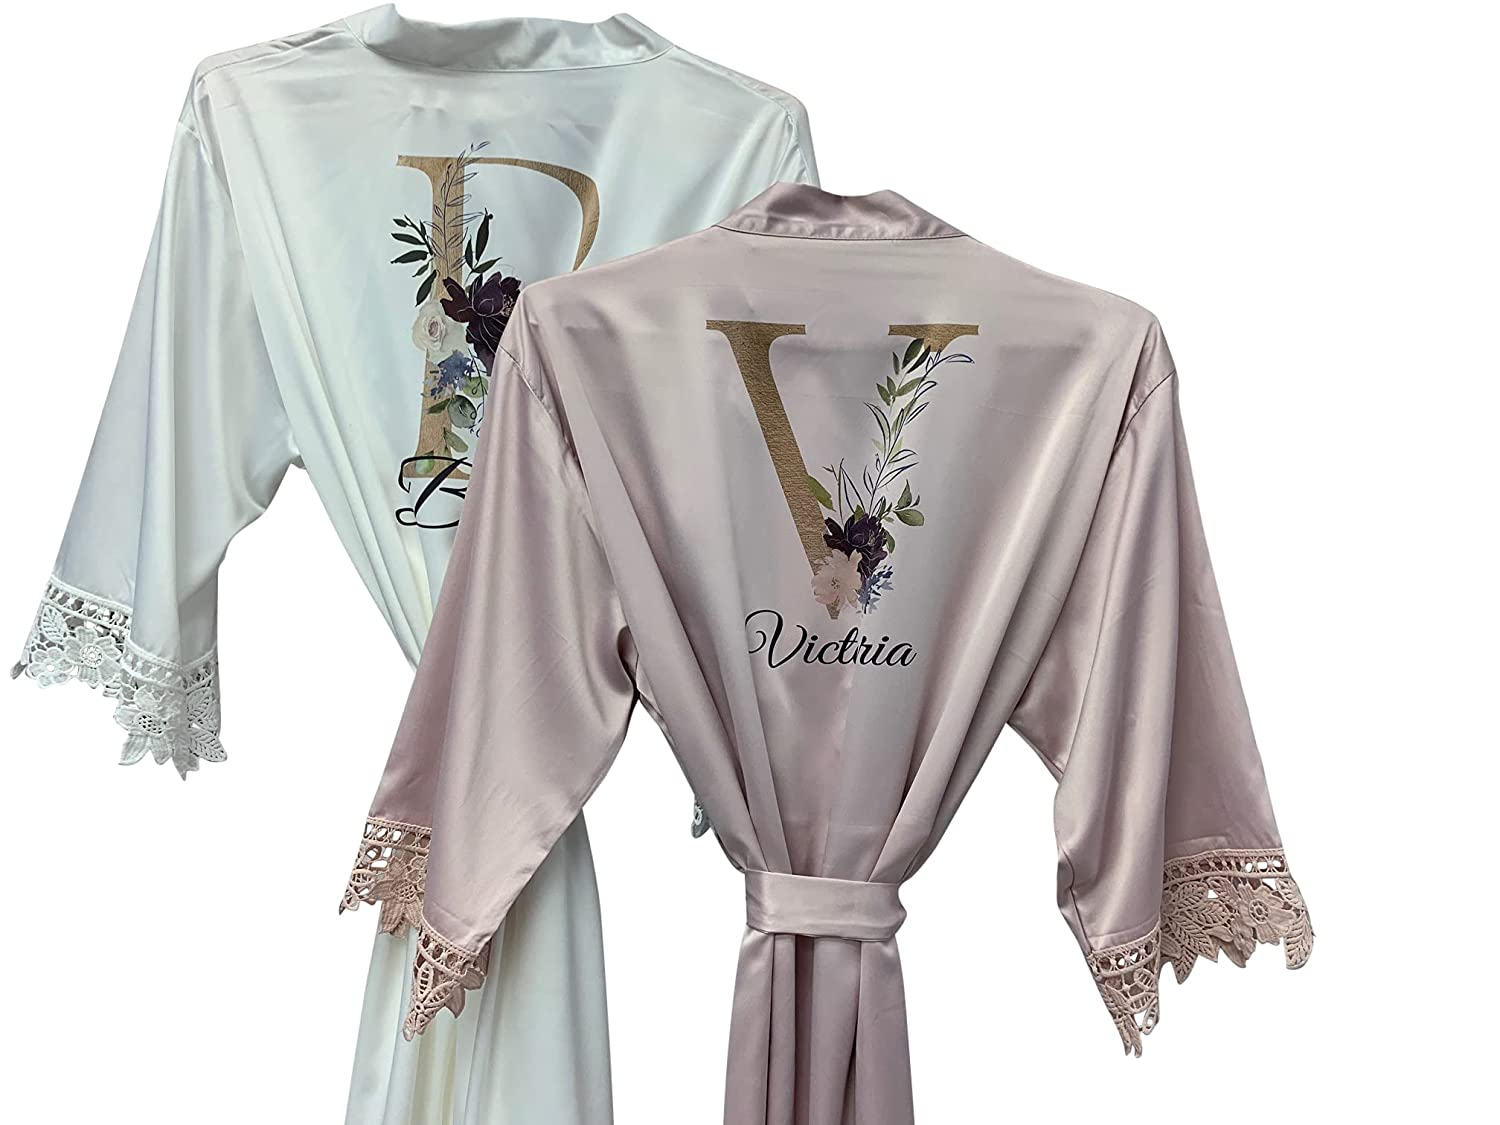 Personalized Bridesmaid Robes Lace Bridal Customized Robe Gift OFFicial mail order online shopping F